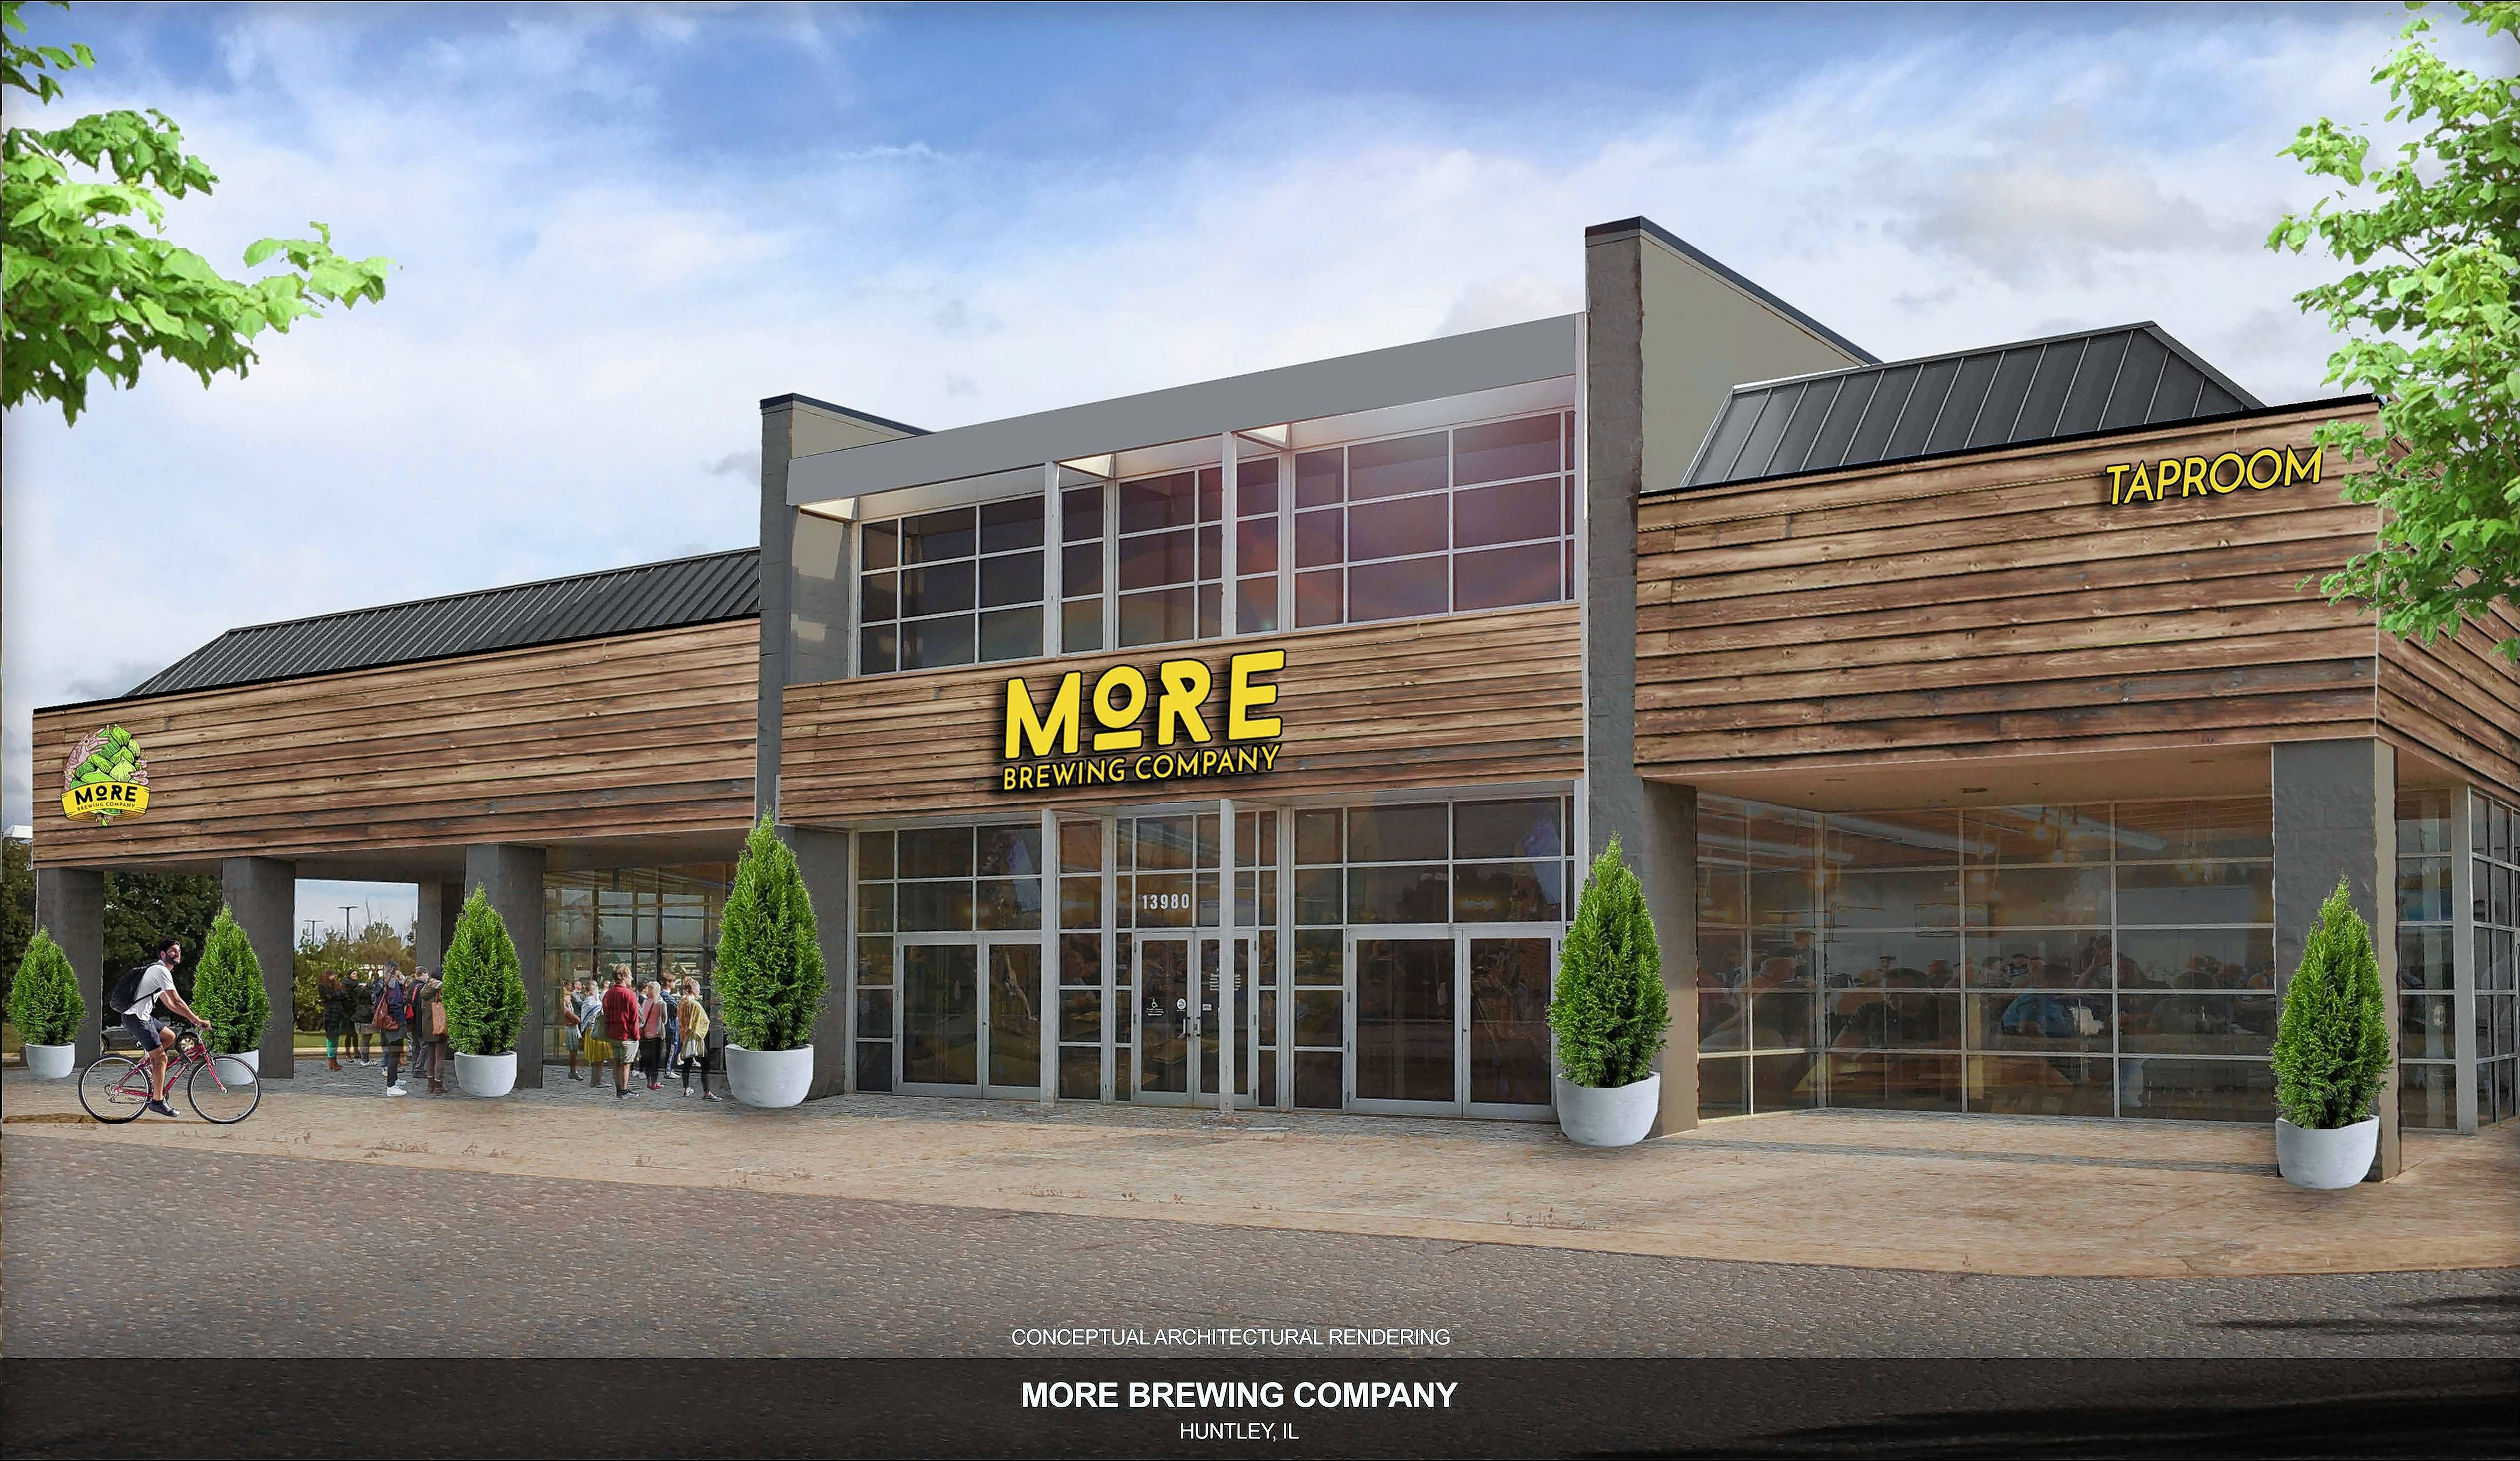 Villa Park-based More Brewing Company has plans to operate a brewery and brewpub restaurant at 13980 Automall Drive in Huntley.